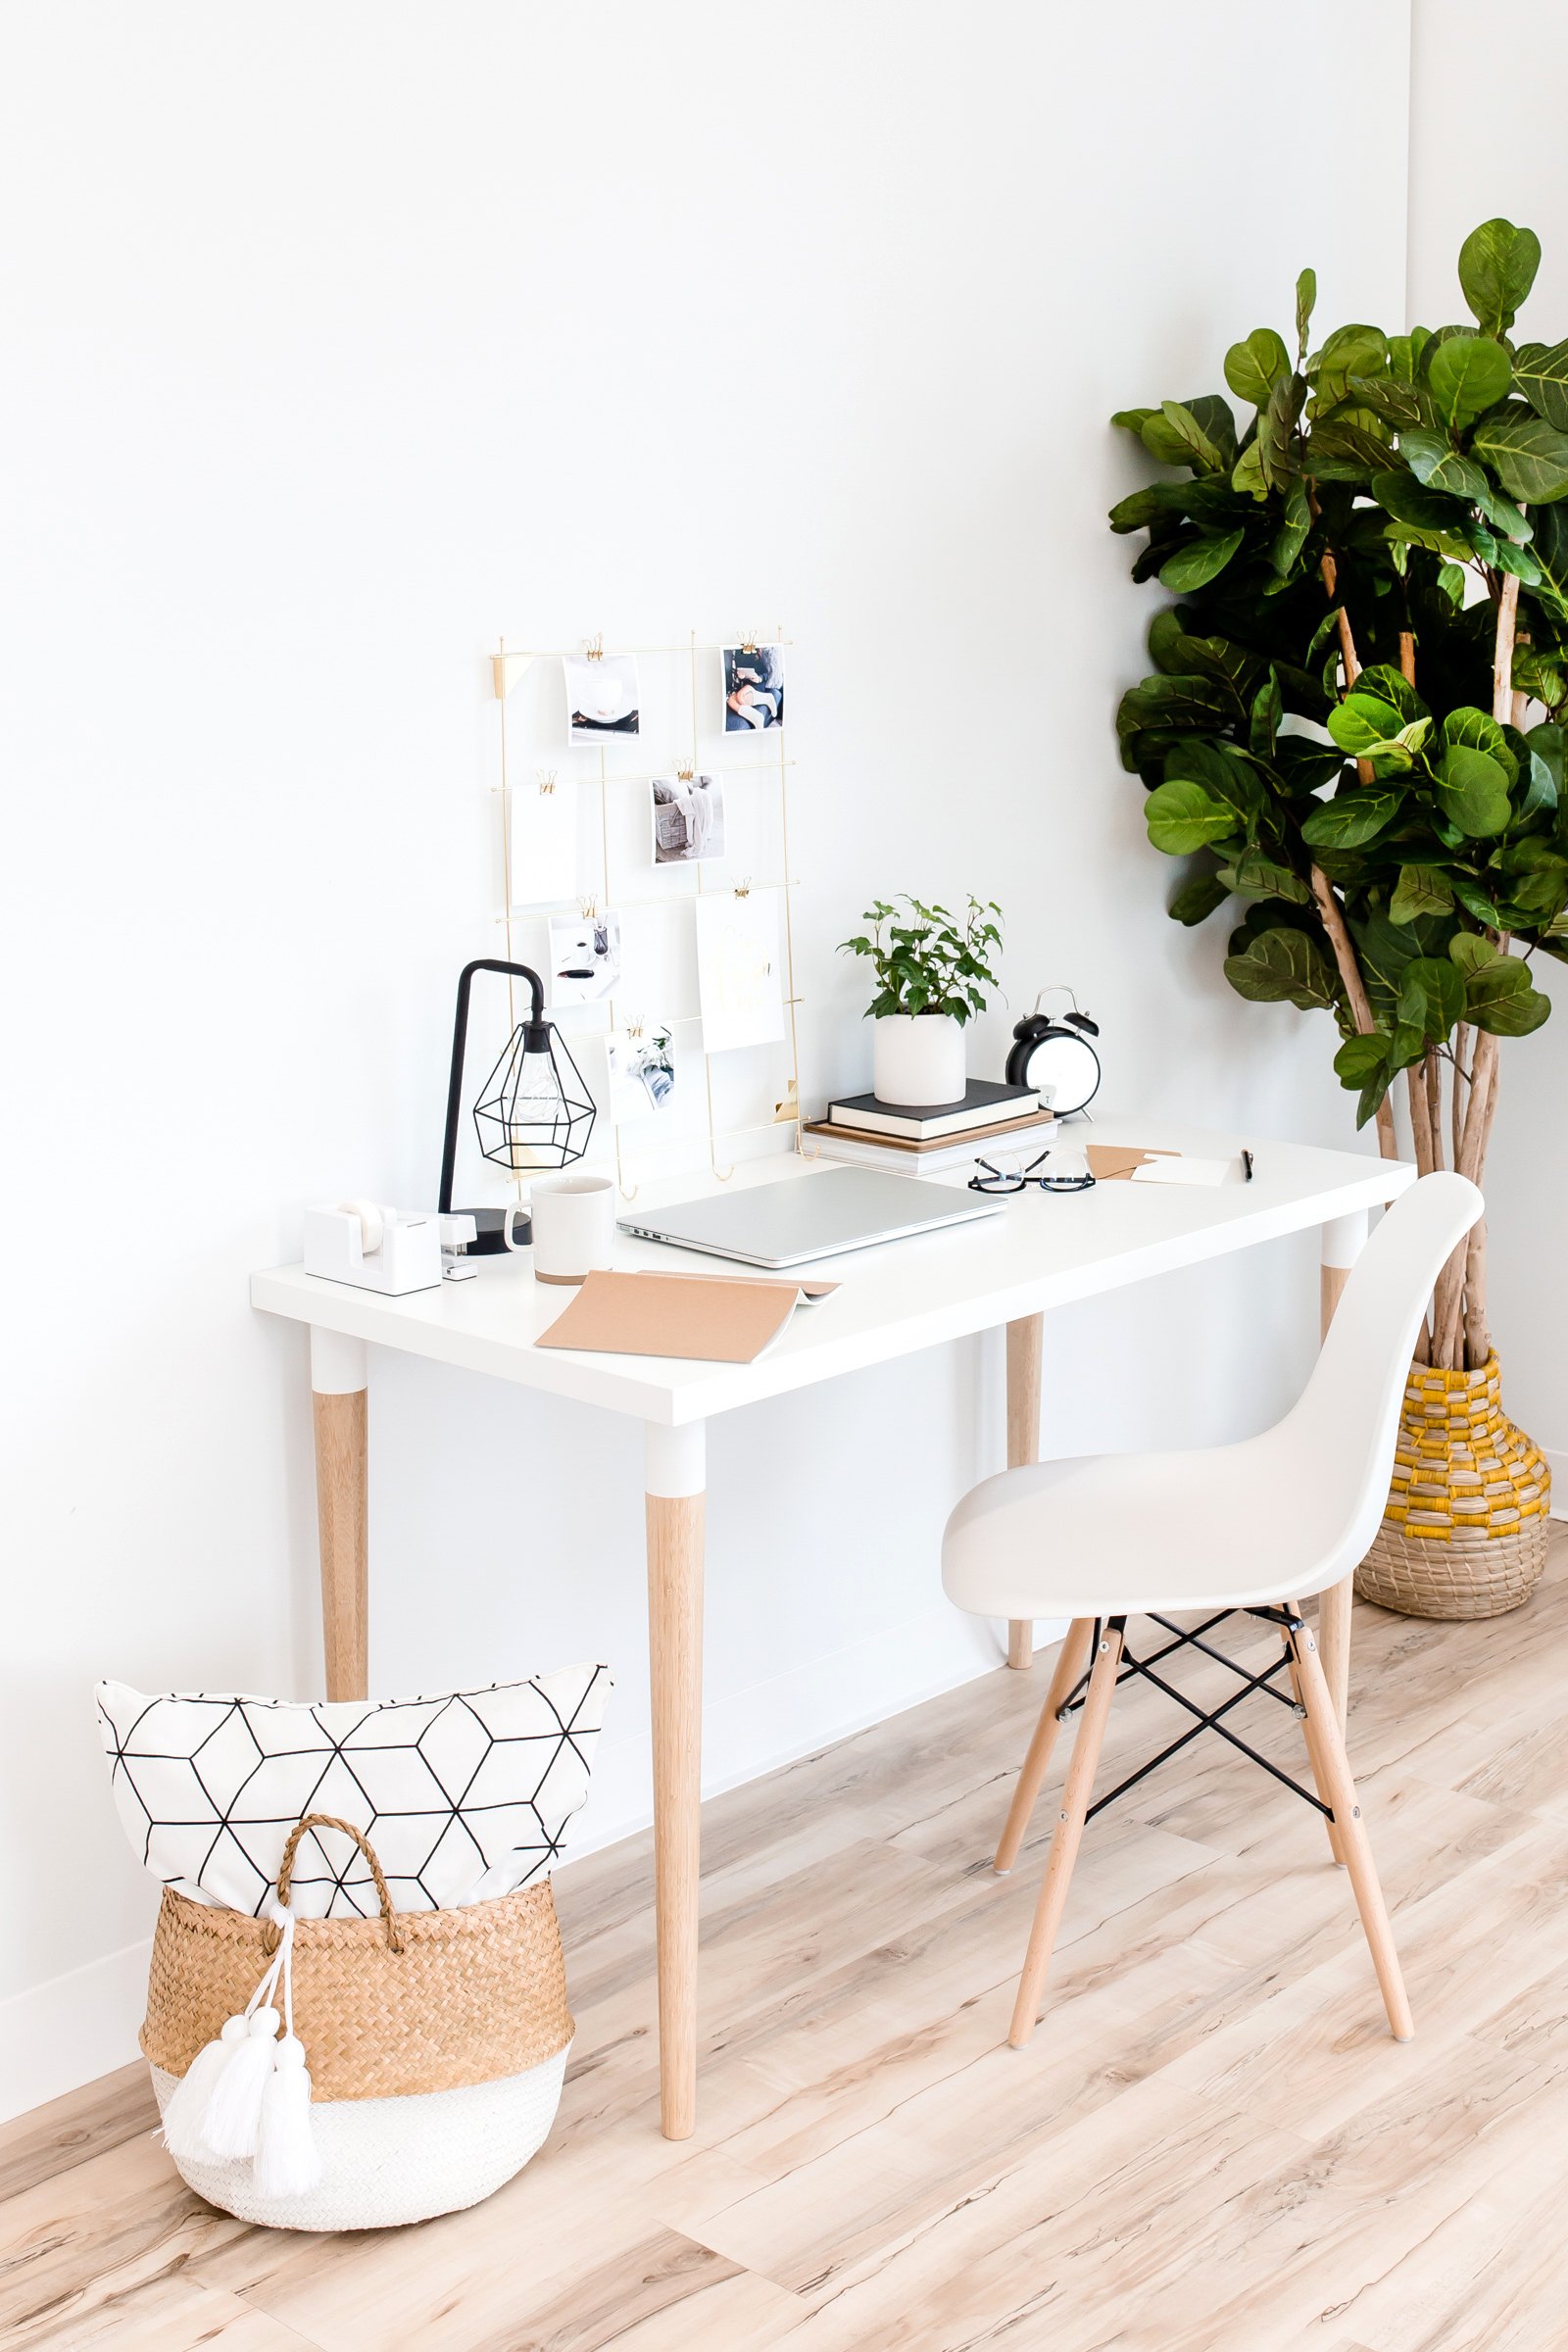 (what I wish my desk looked like)